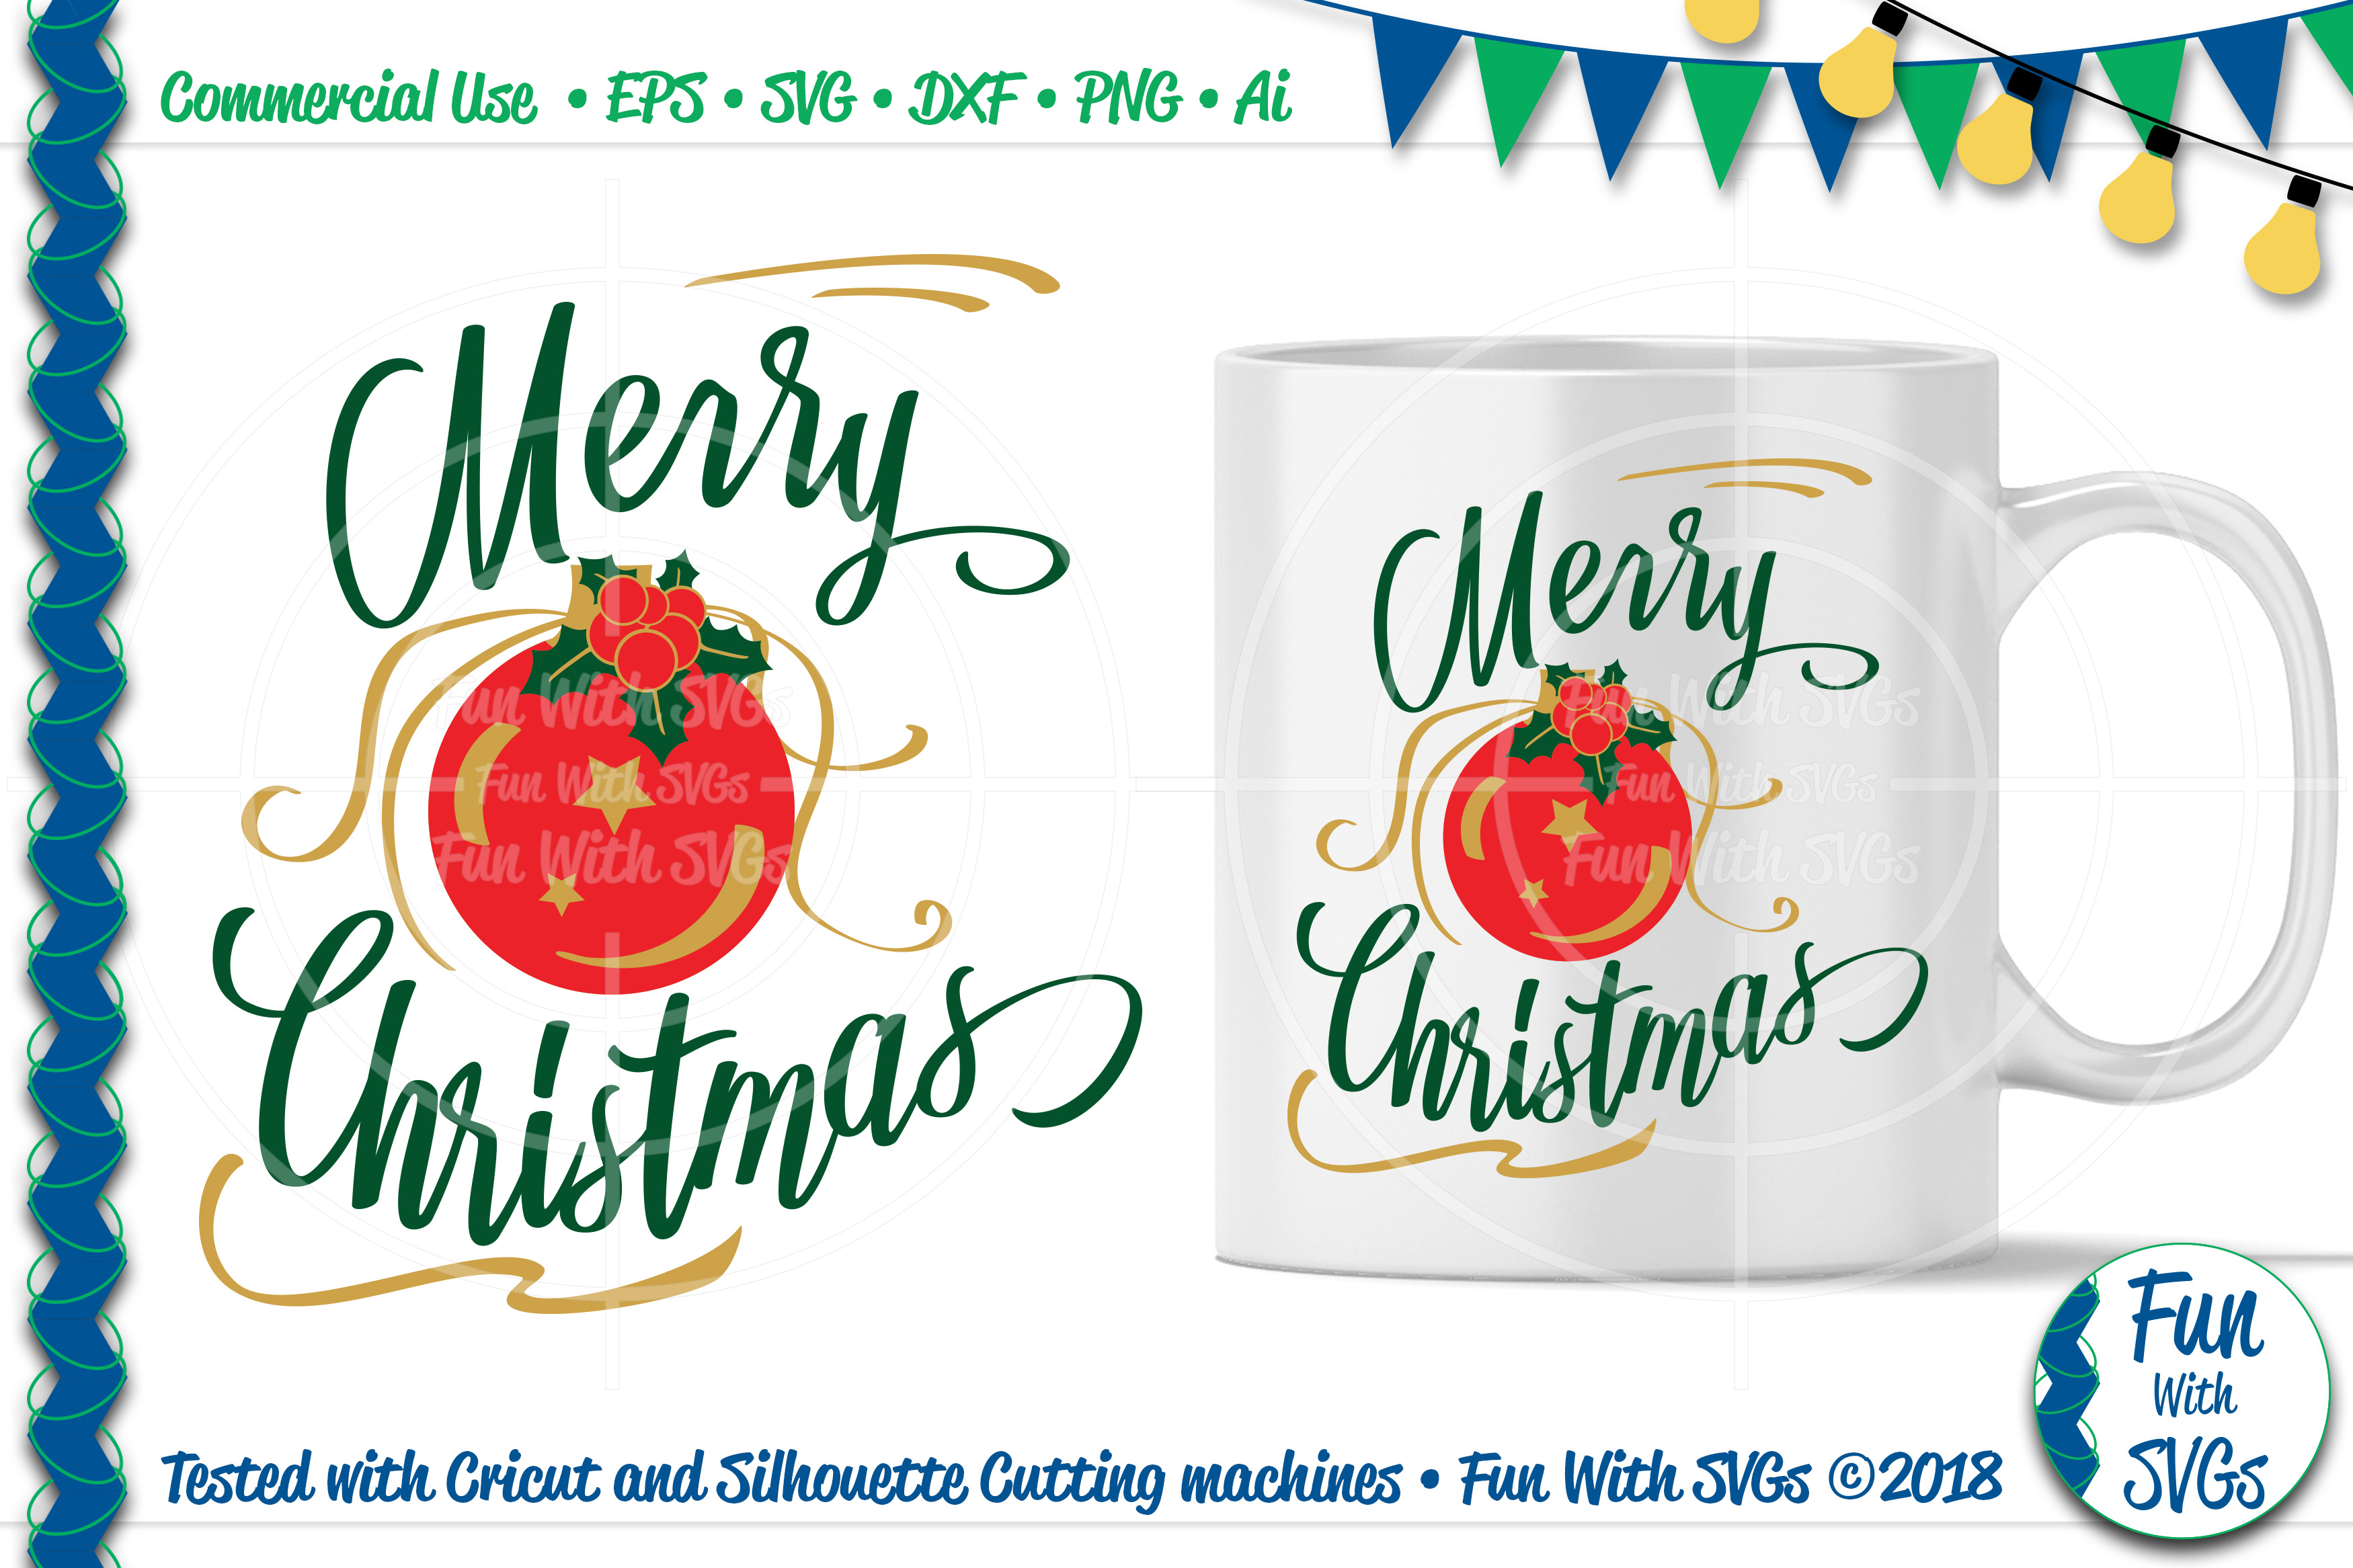 Merry Christmas Ornament Svg.Merry Christmas Svg Ornament With Holly